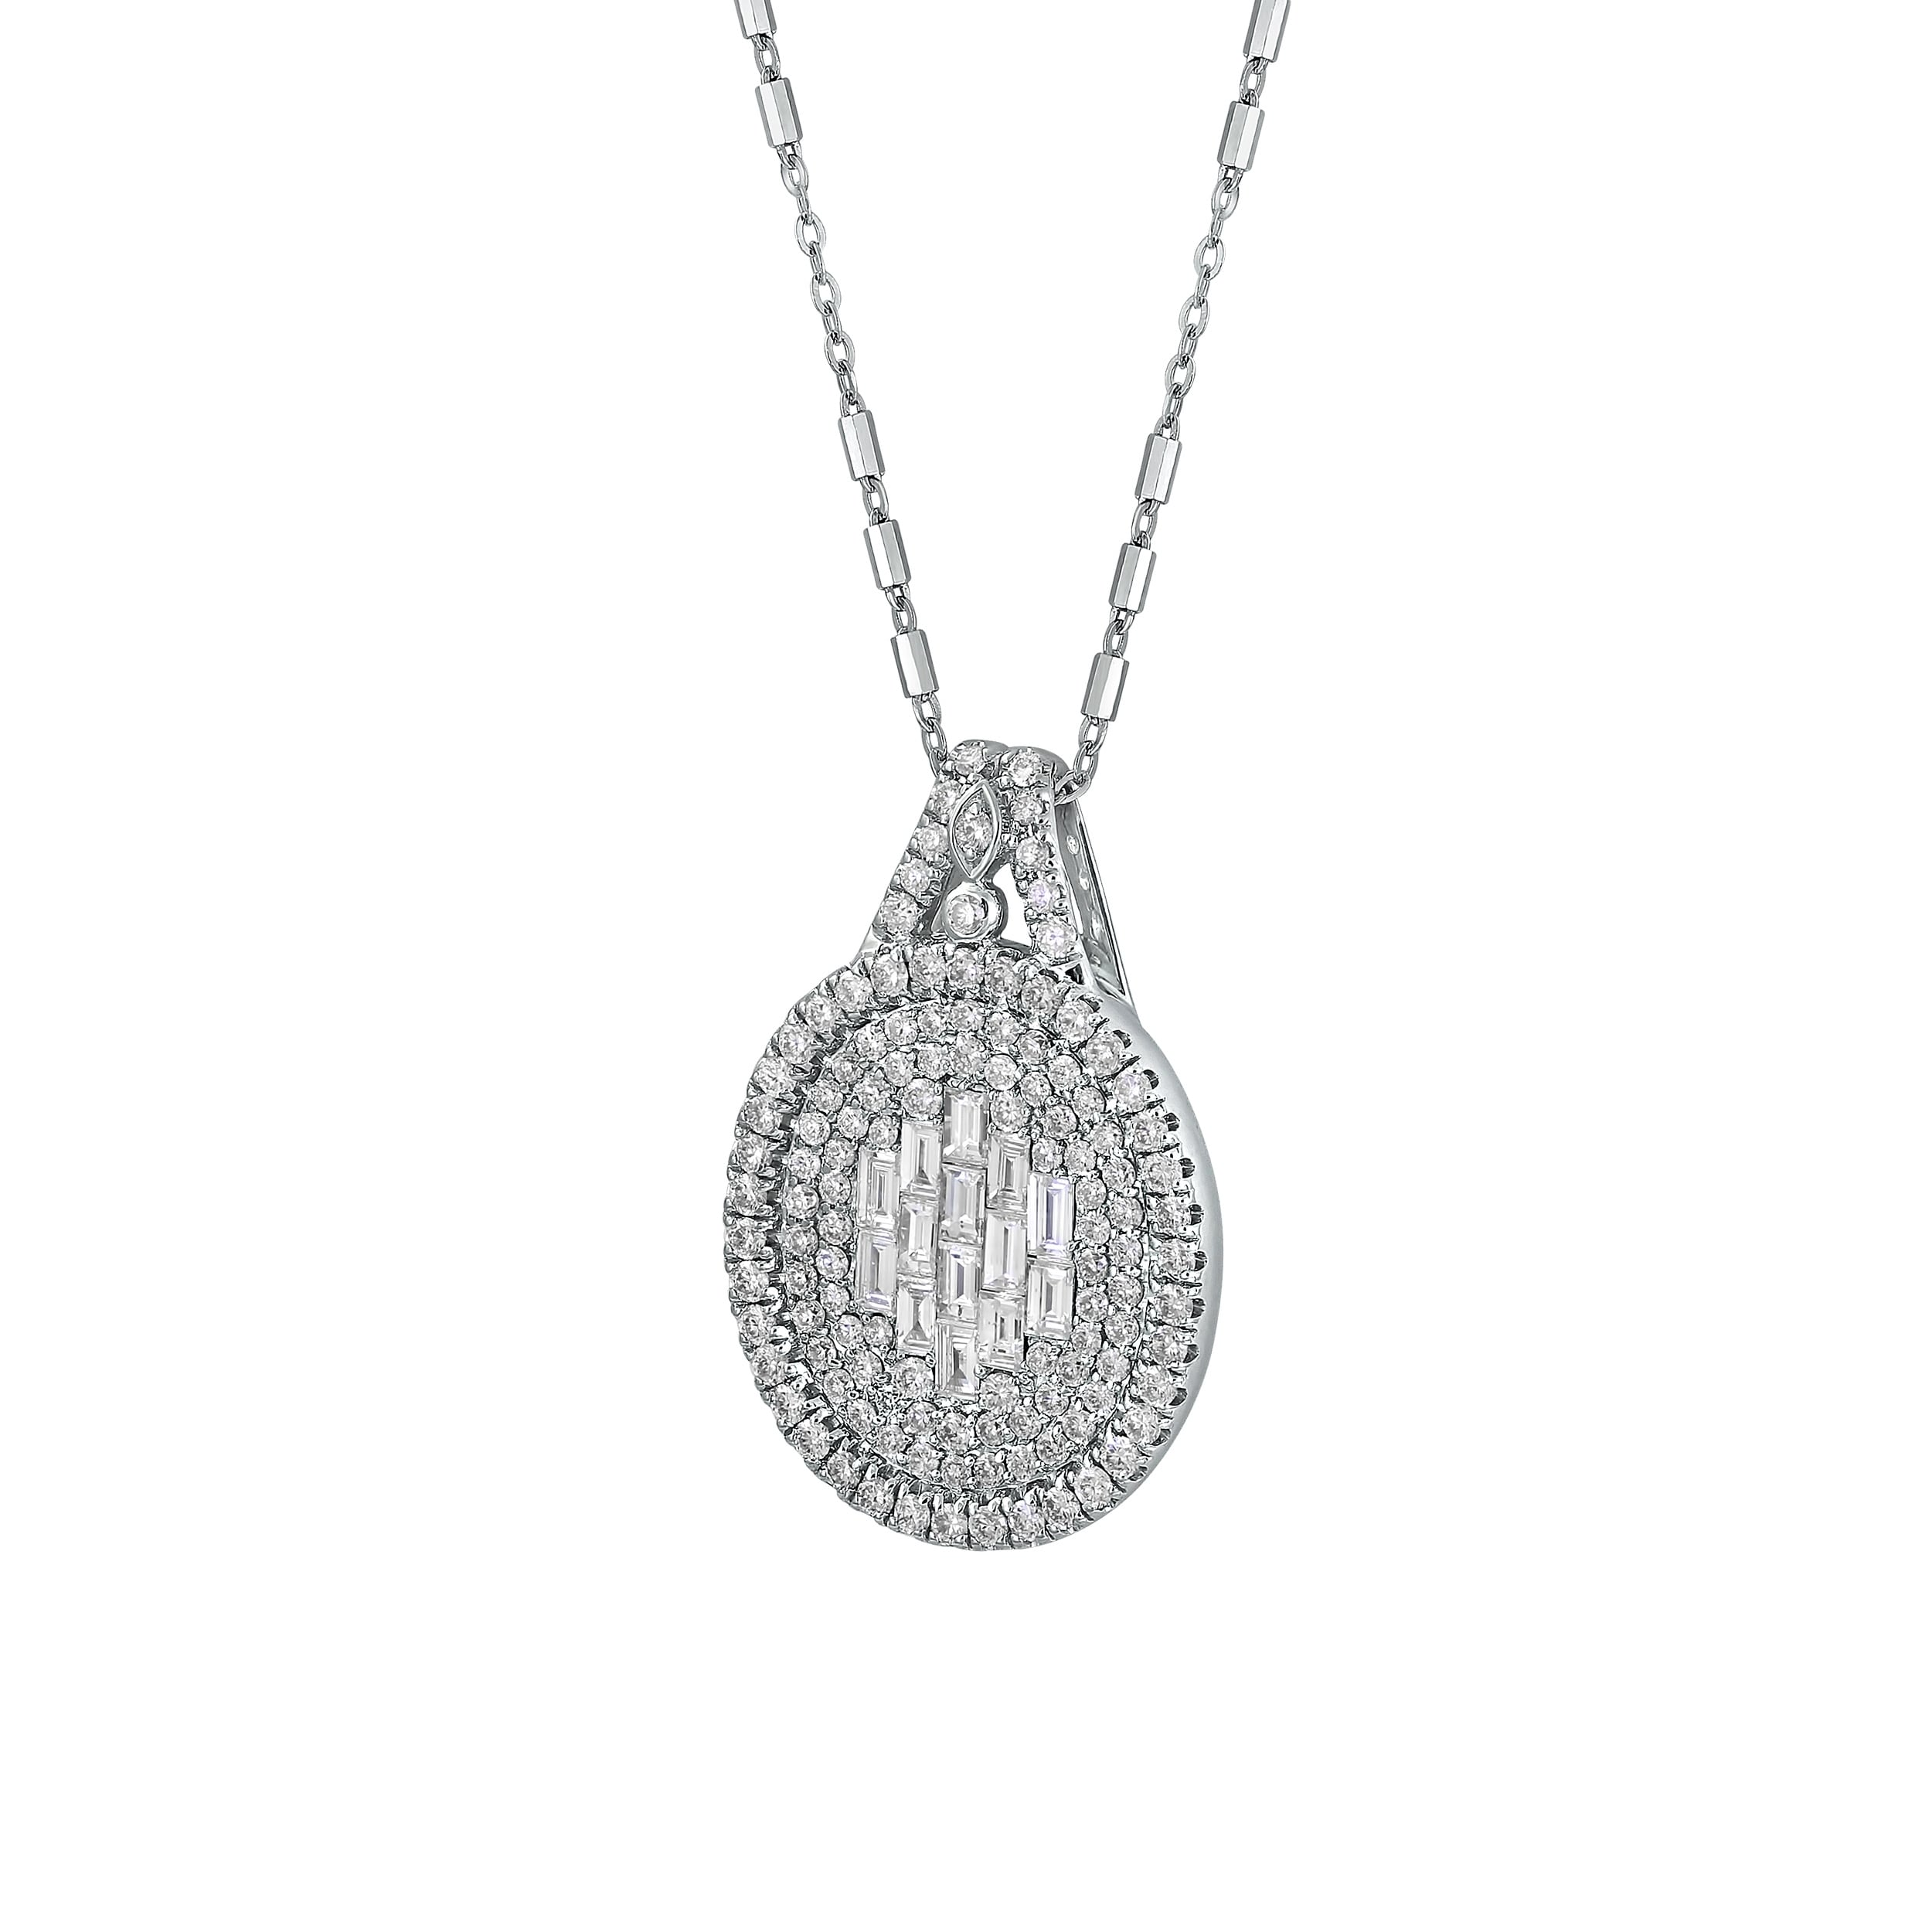 diamonds round around diamond id color all sale drop pendant circle contemporary j stunning necklaces at total f jewelry in gold for trimmed of baguette l carats